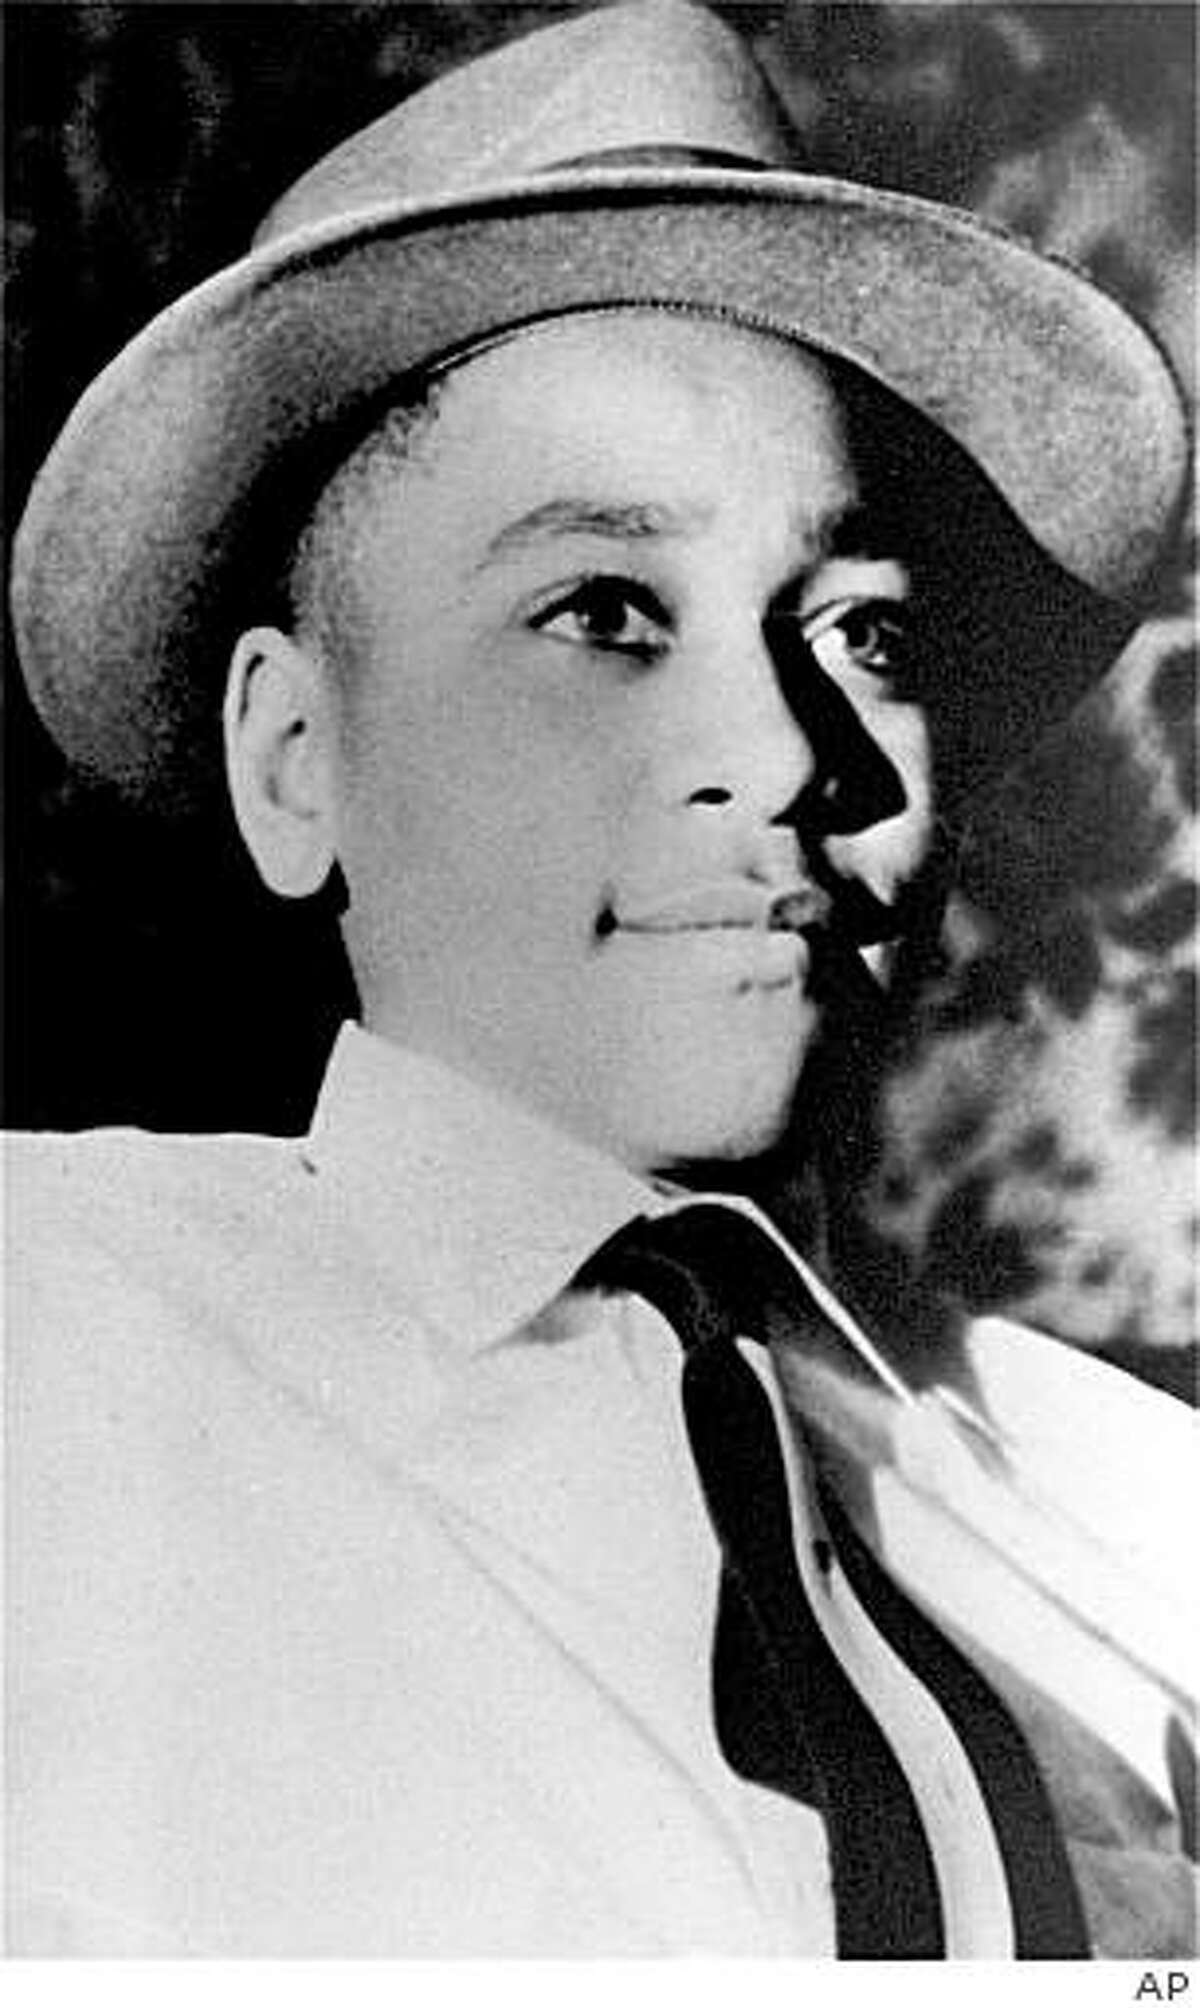 FILE - This undated file photo shows Emmett Louis Till, a 14-year-old from Chicago whose weighted body was found in the Tallahatchie River near the Delta community of Money, Miss., on Aug. 31, 1955. Four cemetery workers have been charged Thursday, July 9, 2009 with dismembering bodies after police found what they called